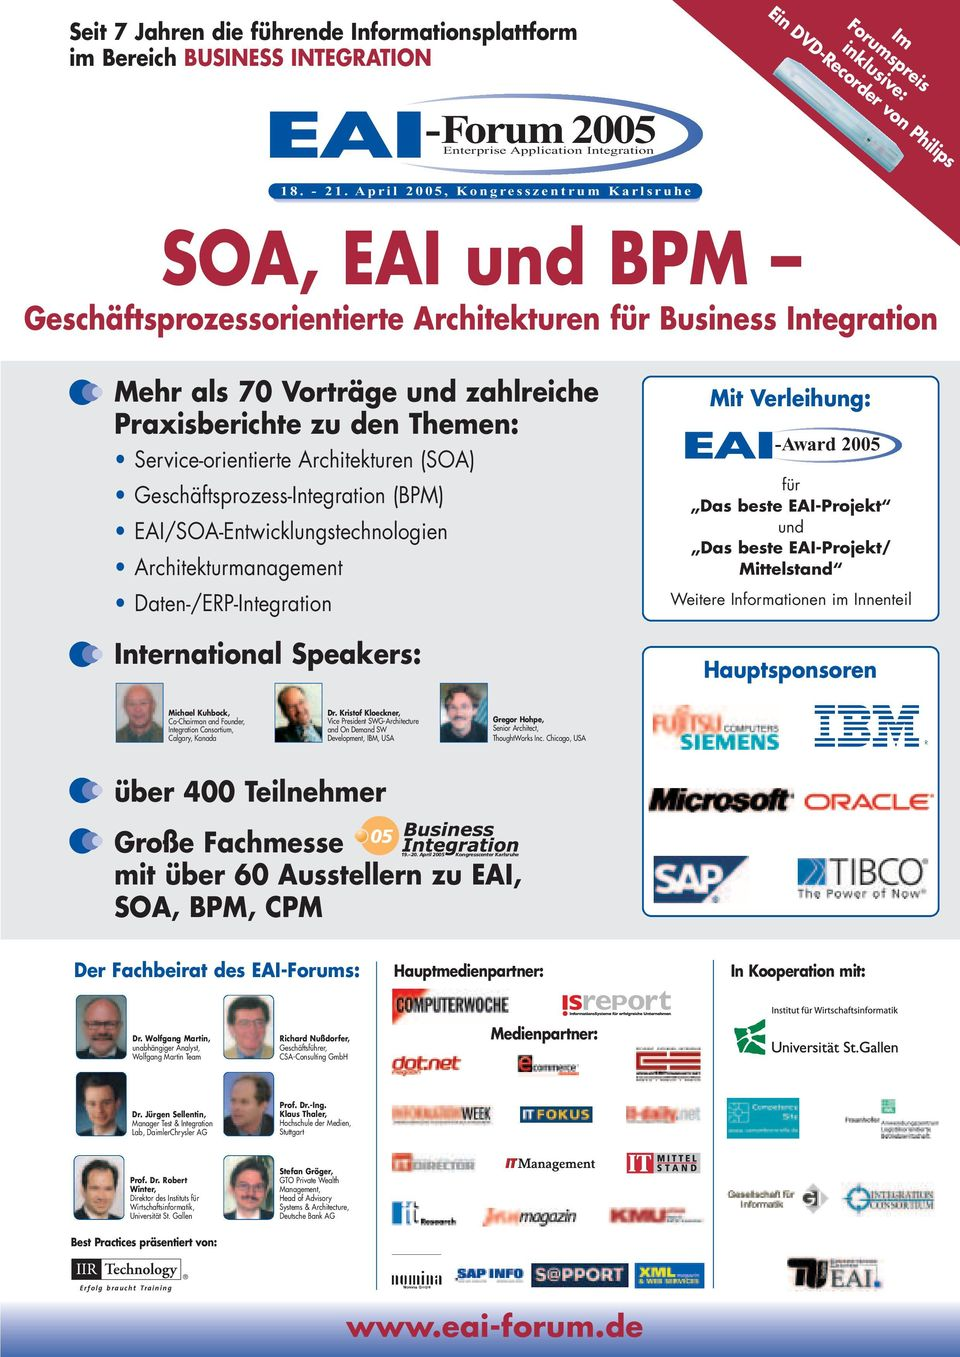 und zahlreiche Praxisberichte zu den Themen: Service-orientierte Architekturen (SOA) Geschäftsprozess-Integration (BPM) EAI/SOA-Entwicklungstechnologien Architekturmanagement Daten-/ERP-Integration